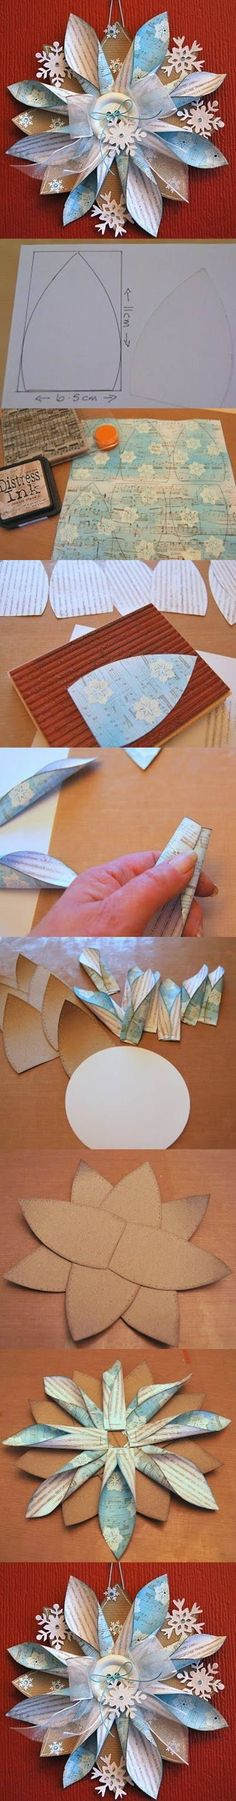 DIY Paper Flower Ornaments DIY Paper Flower Ornaments